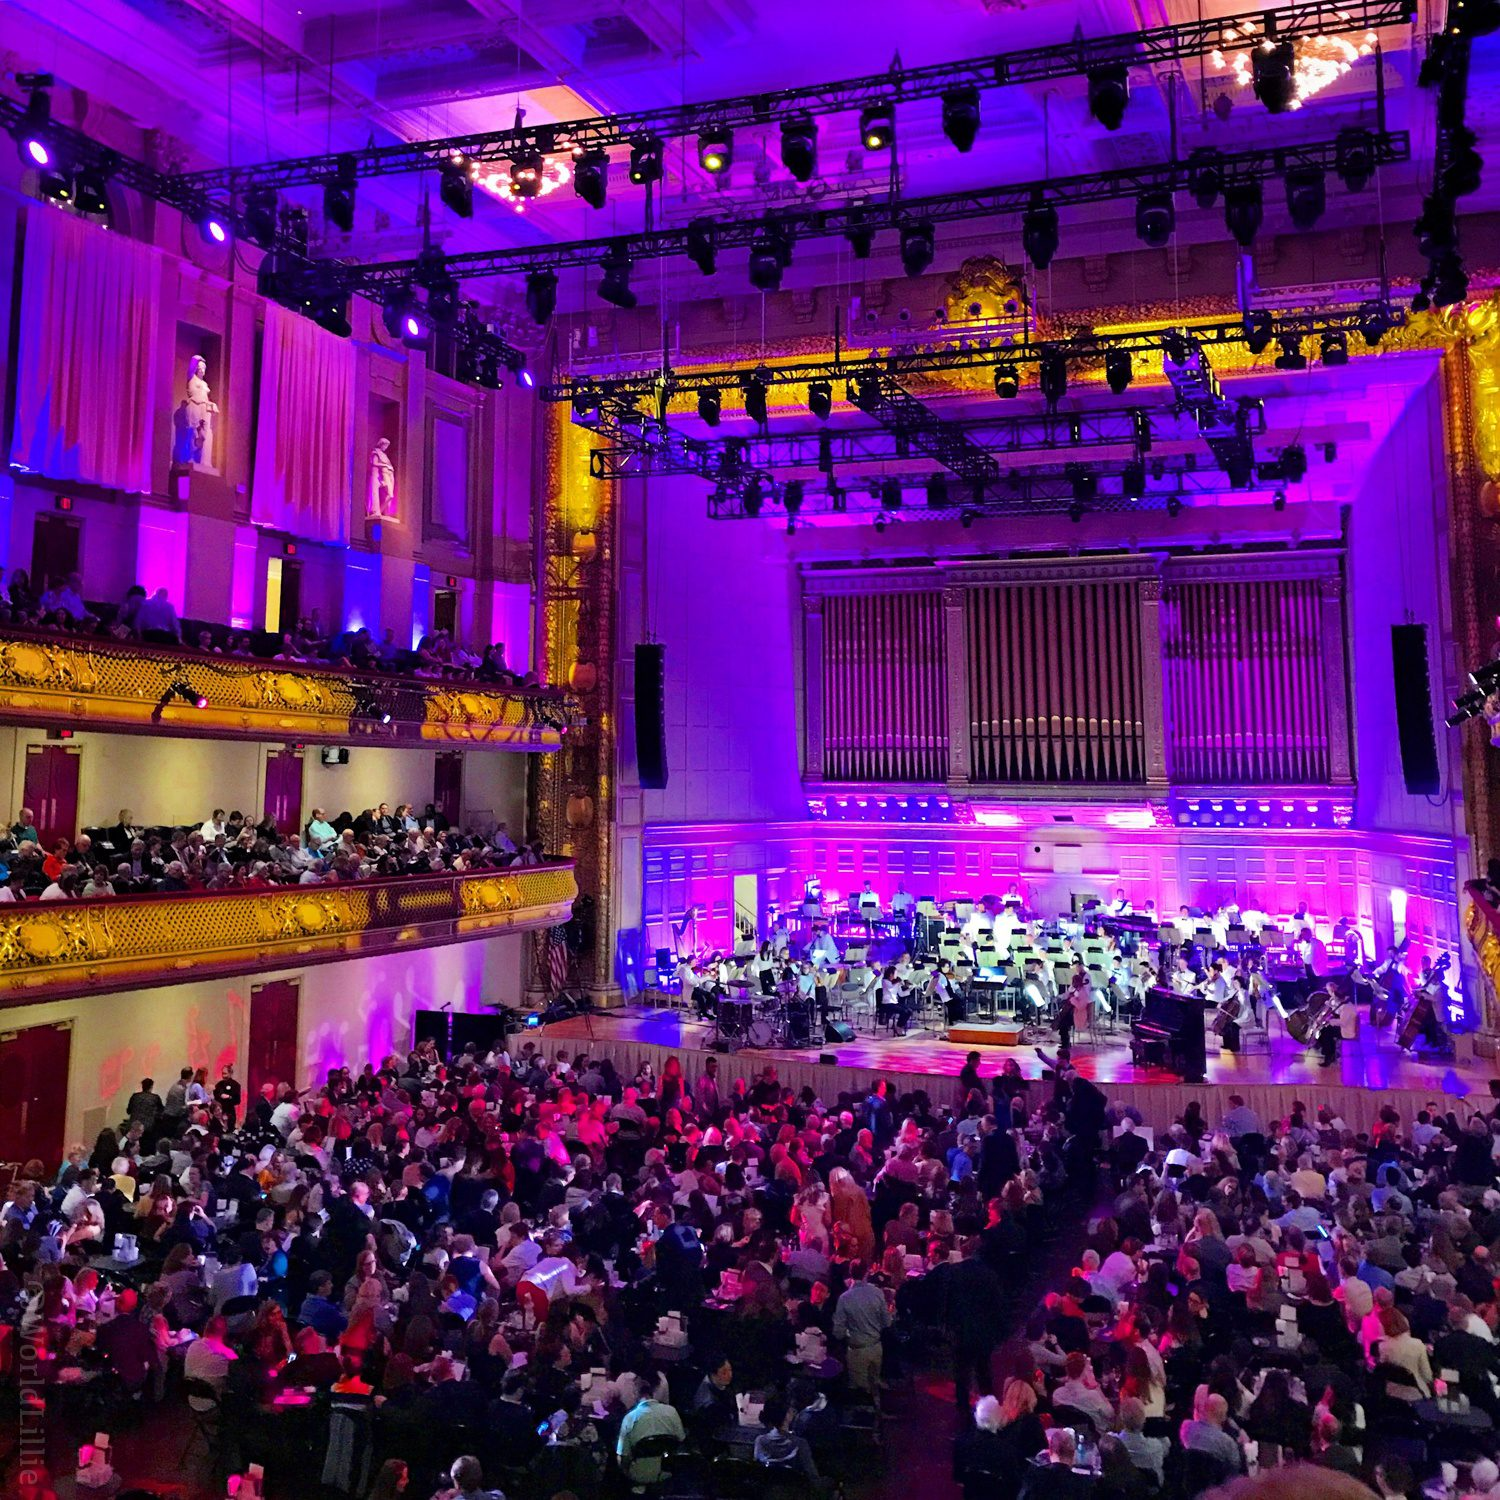 Seeing Leslie Odom Jr. perform at Symphony Hall in Boston was a highlight of the year.